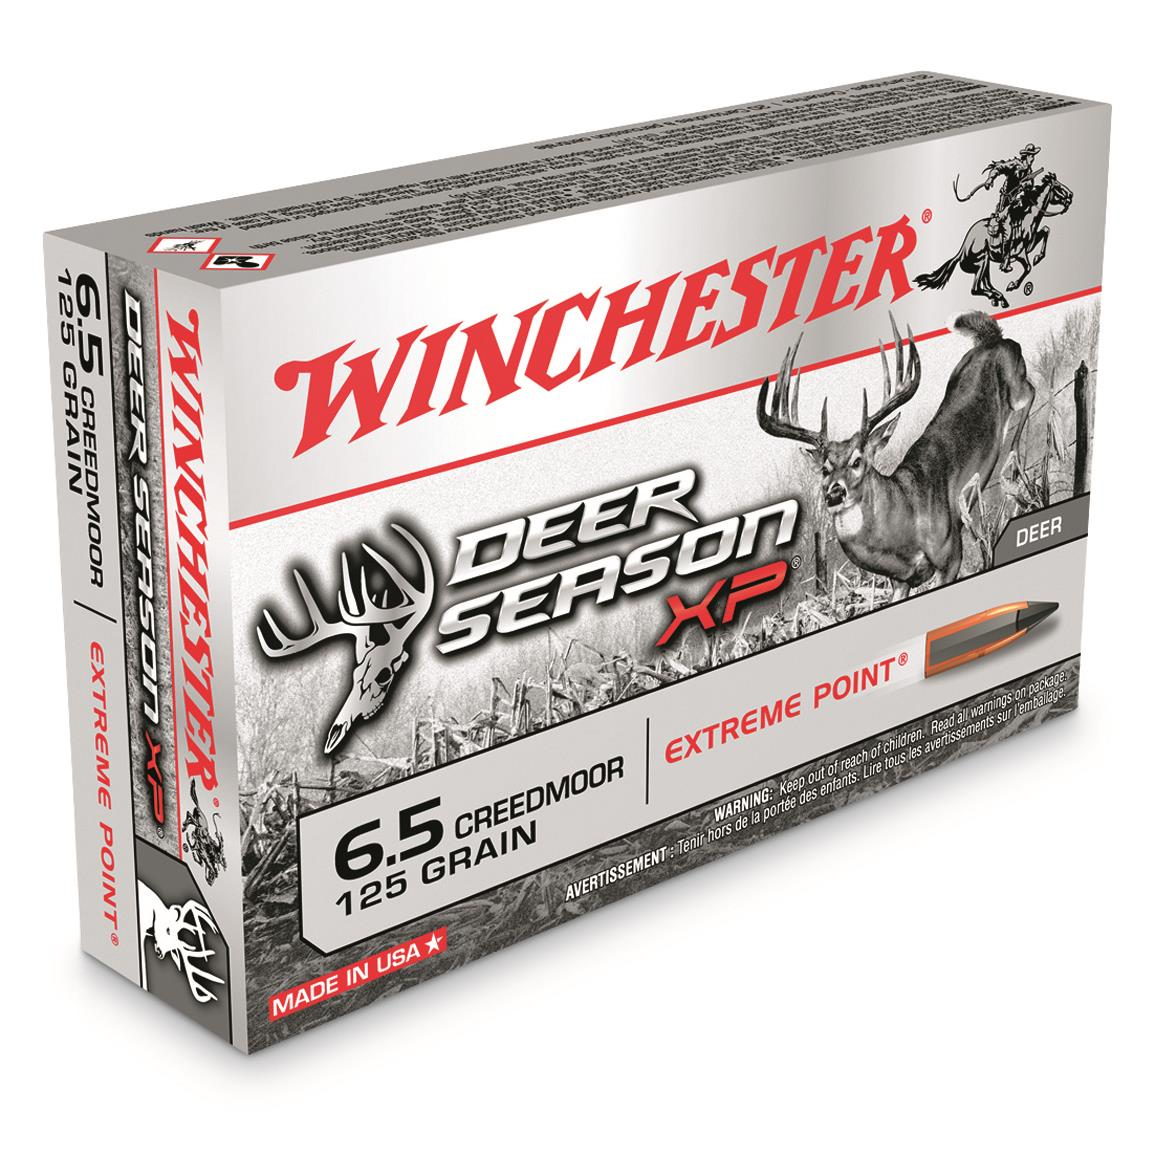 Winchester Deer Season XP, 6.5mm Creedmoor, Polymer-Tipped Extreme Point, 125 Grain, 20 Rounds